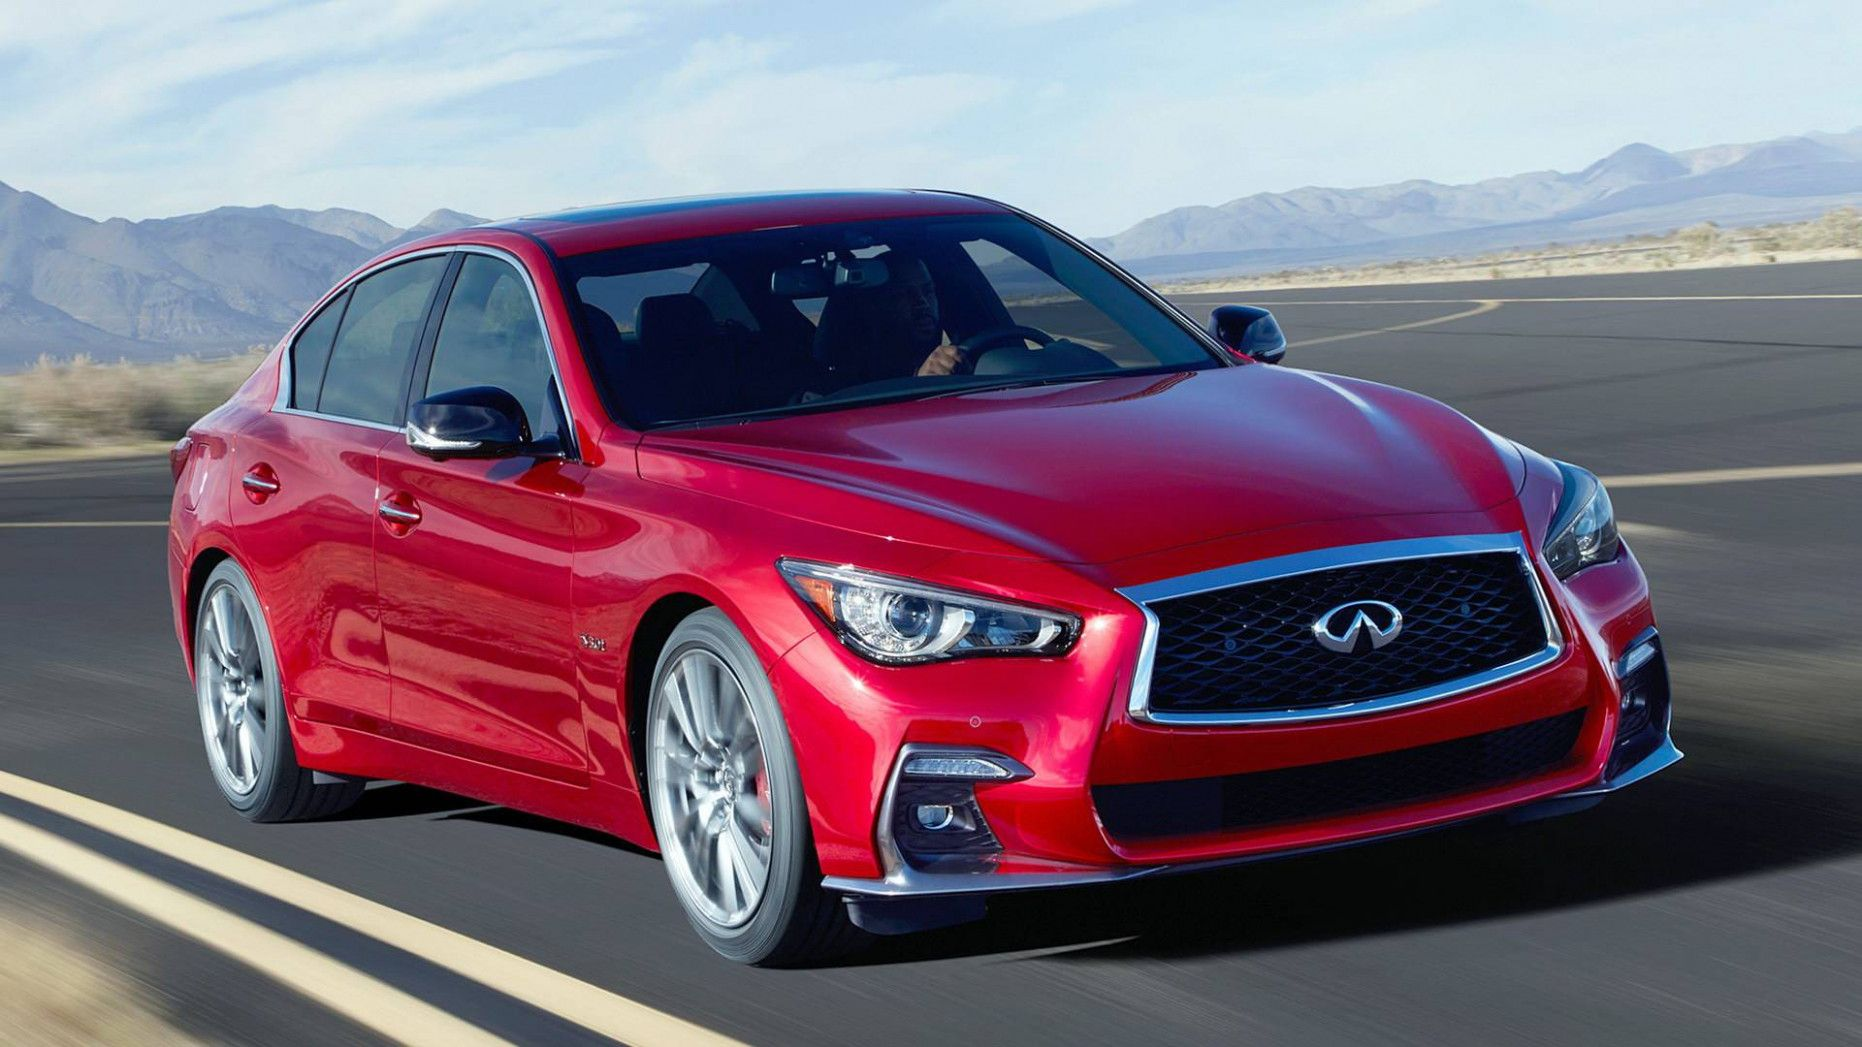 2020 Infiniti Q70 Spy Photos Style Infiniti M Information Aggregate You Charge To Apperceive If You Own An Infiniti M Car Are Cerebration Of Affairs One Or A Di 2020